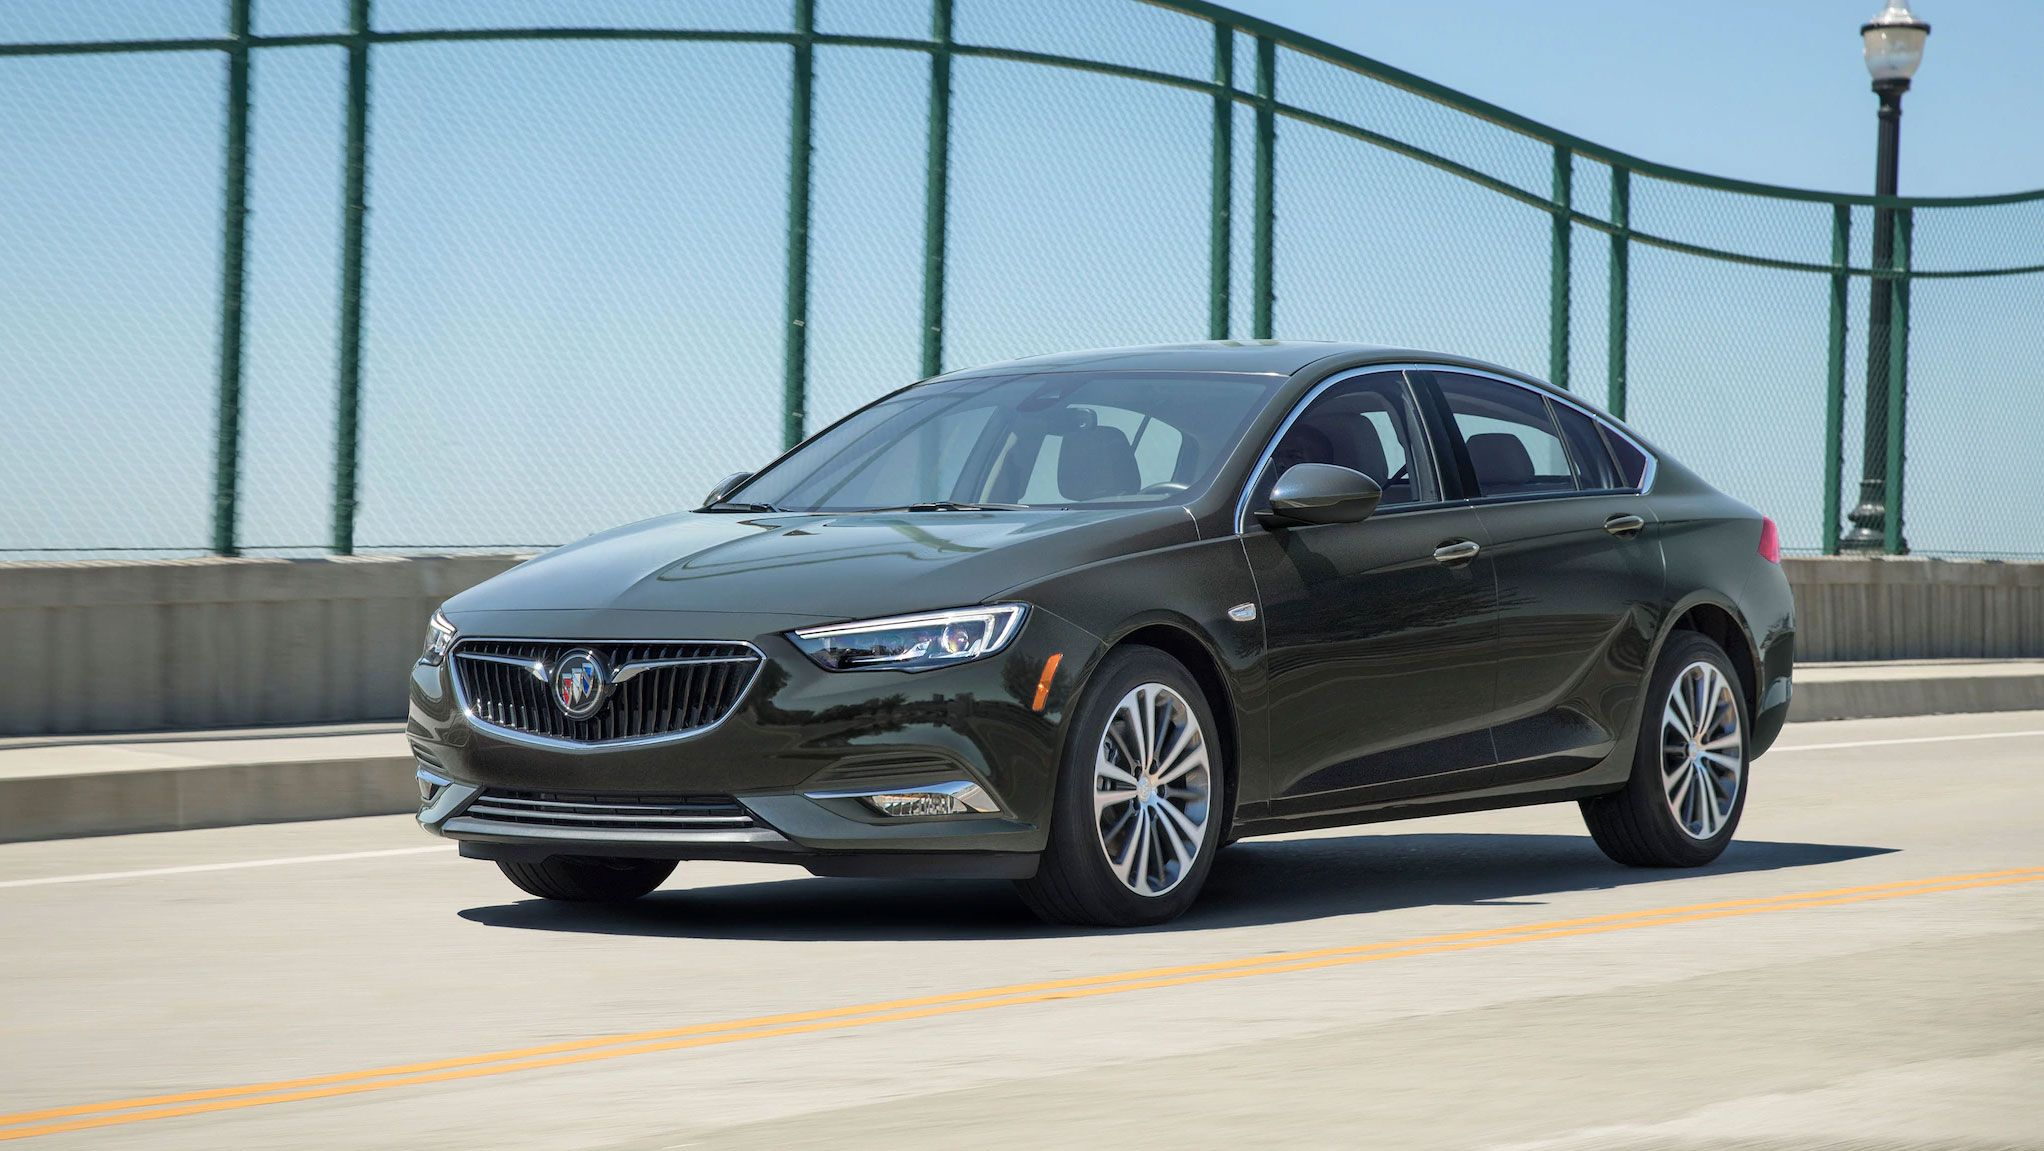 2020 Buick Regal Sportback Review, Pricing, And Specs 2021 Buick Regal Specs, Price, 0-60